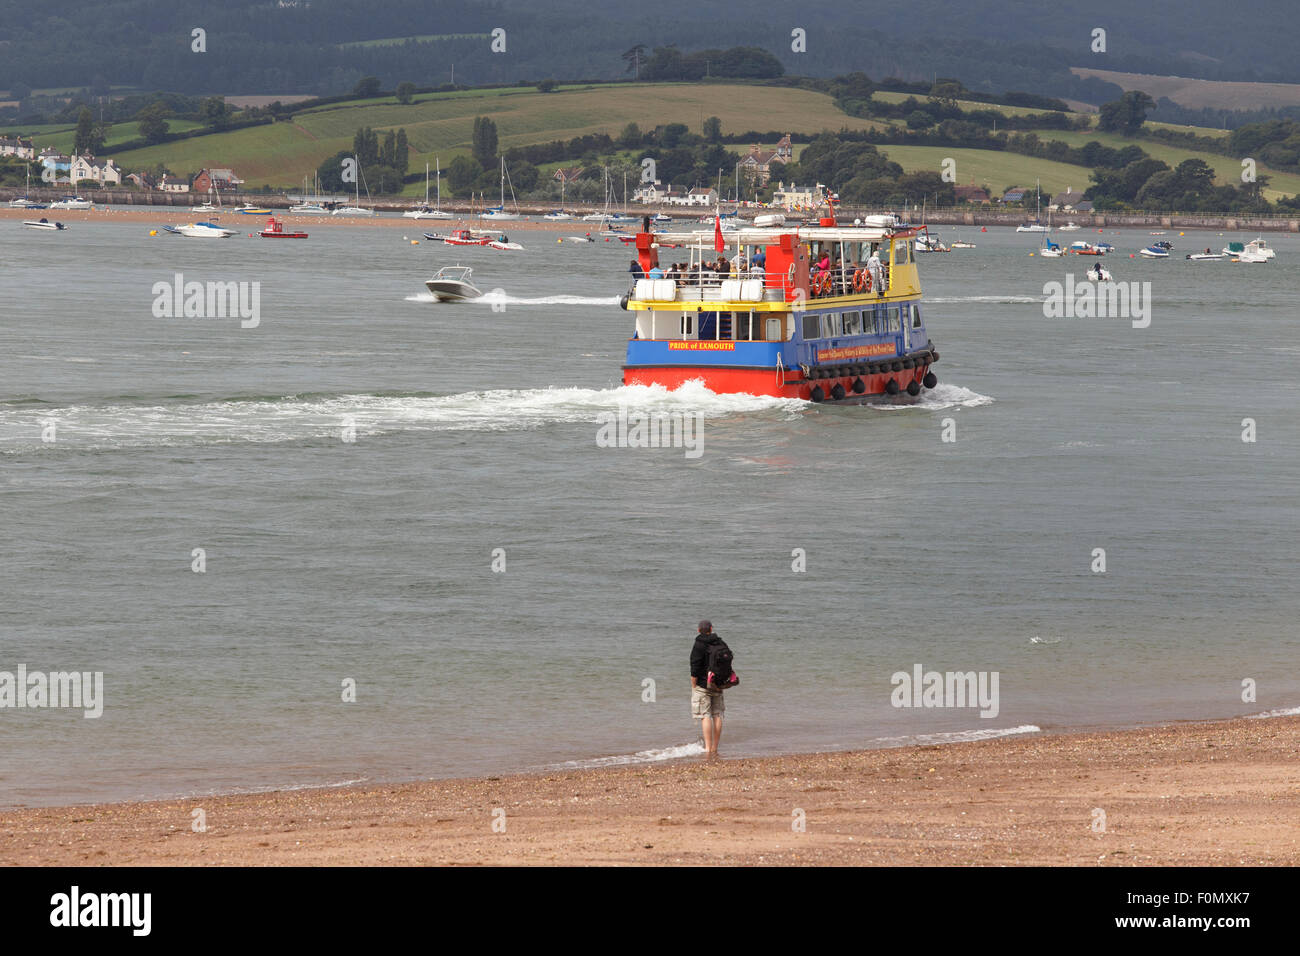 'Pride of Exmouth' ferry, watched from beach by man, cruising into mouth of the river Exe. - Stock Image